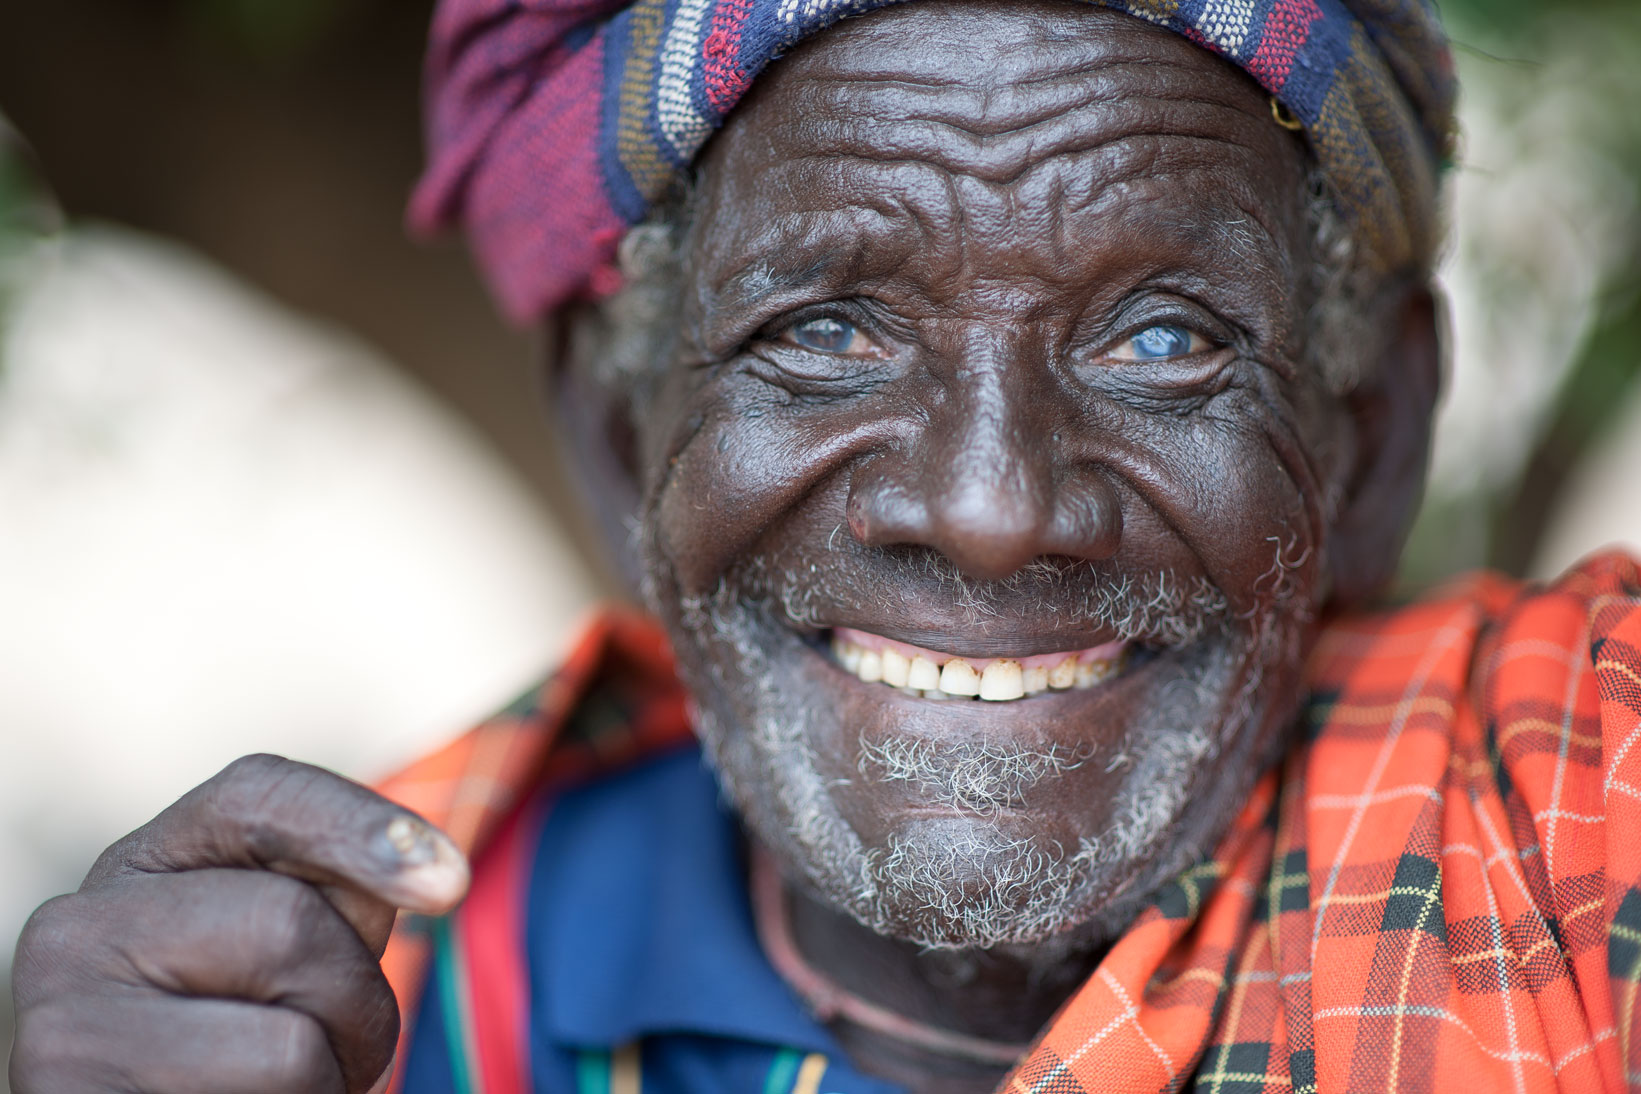 Arbore tribal elder with cataracts